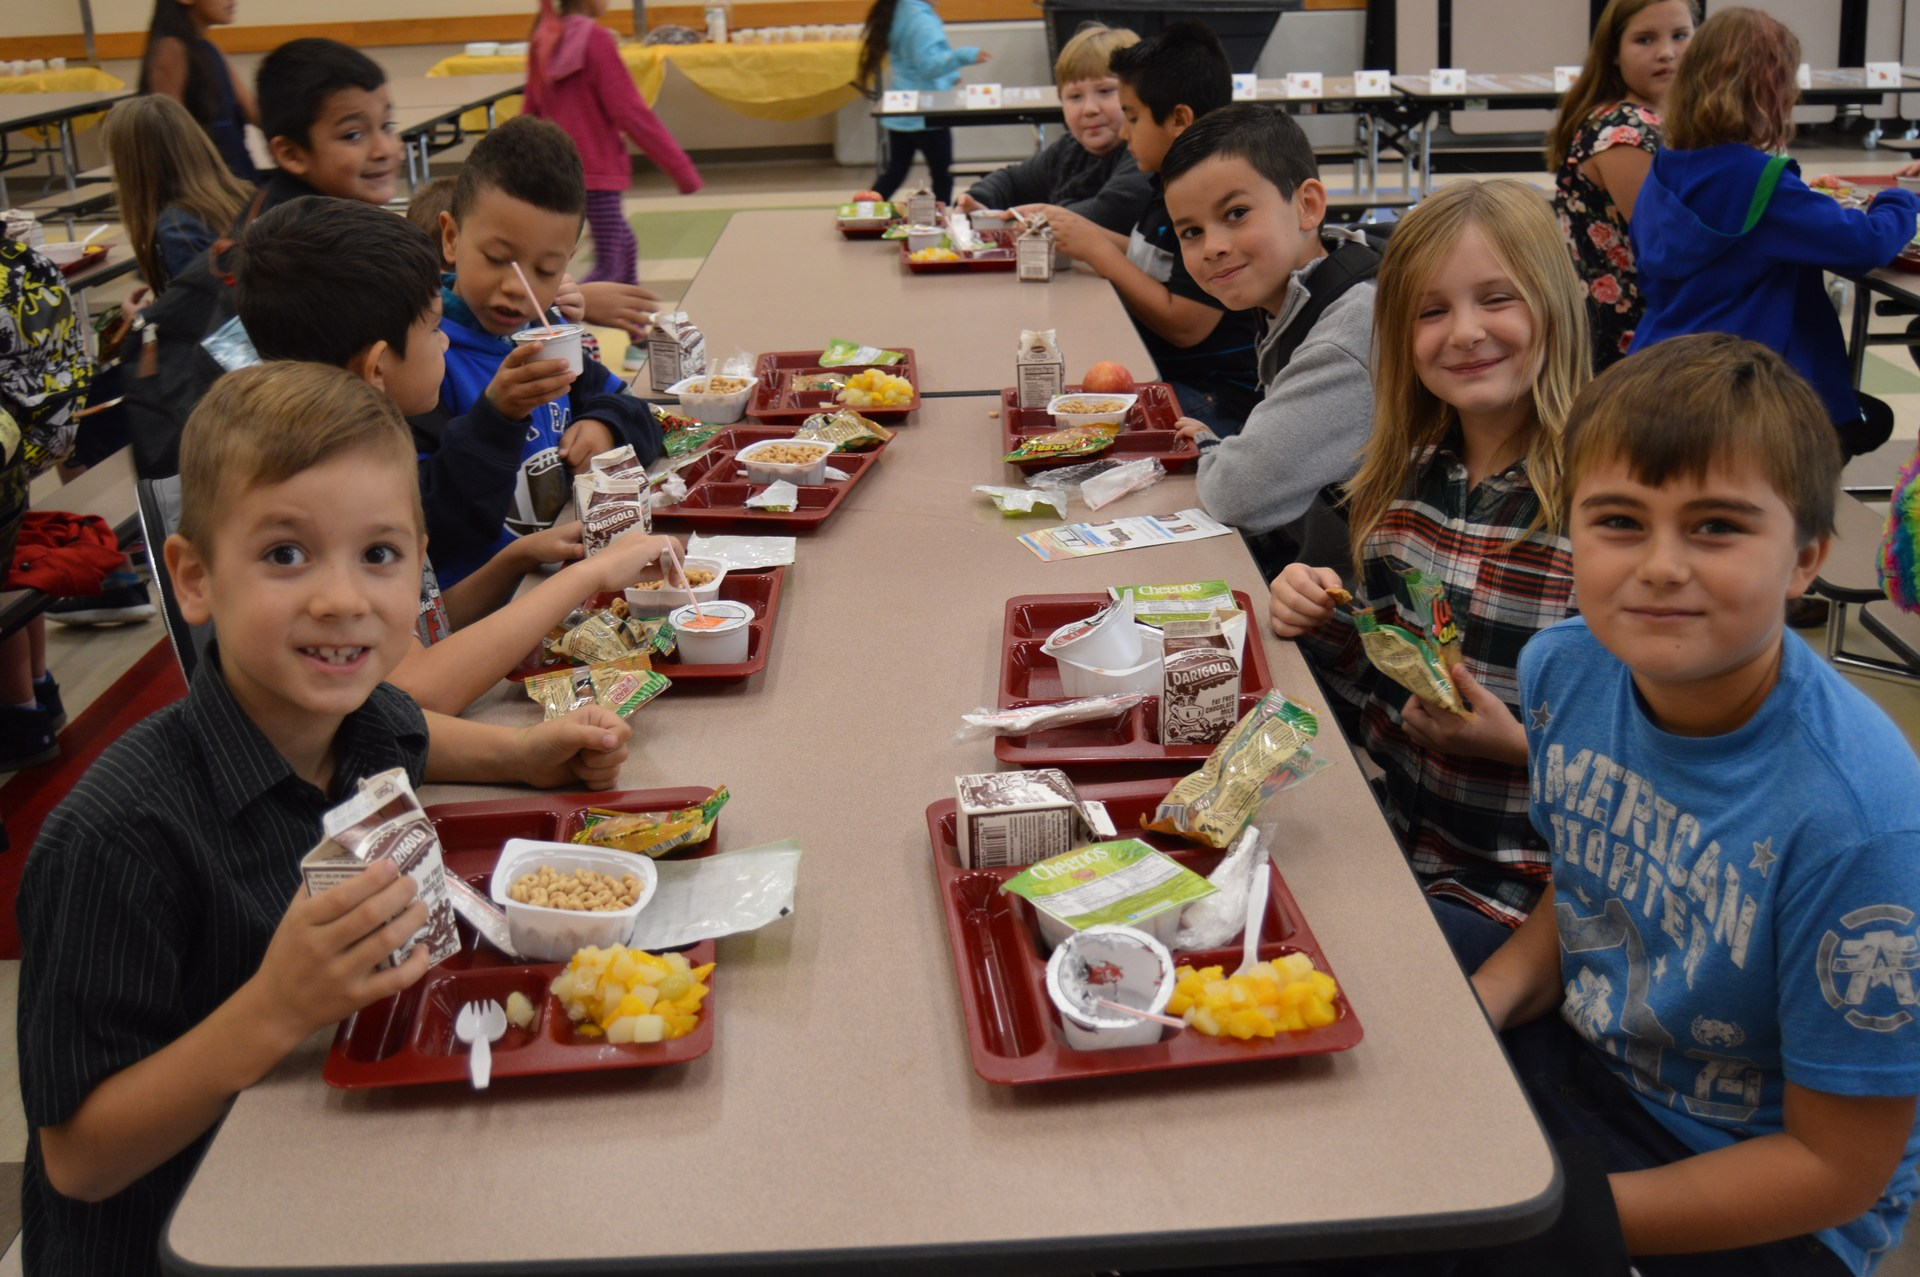 kids at a table eating lunch